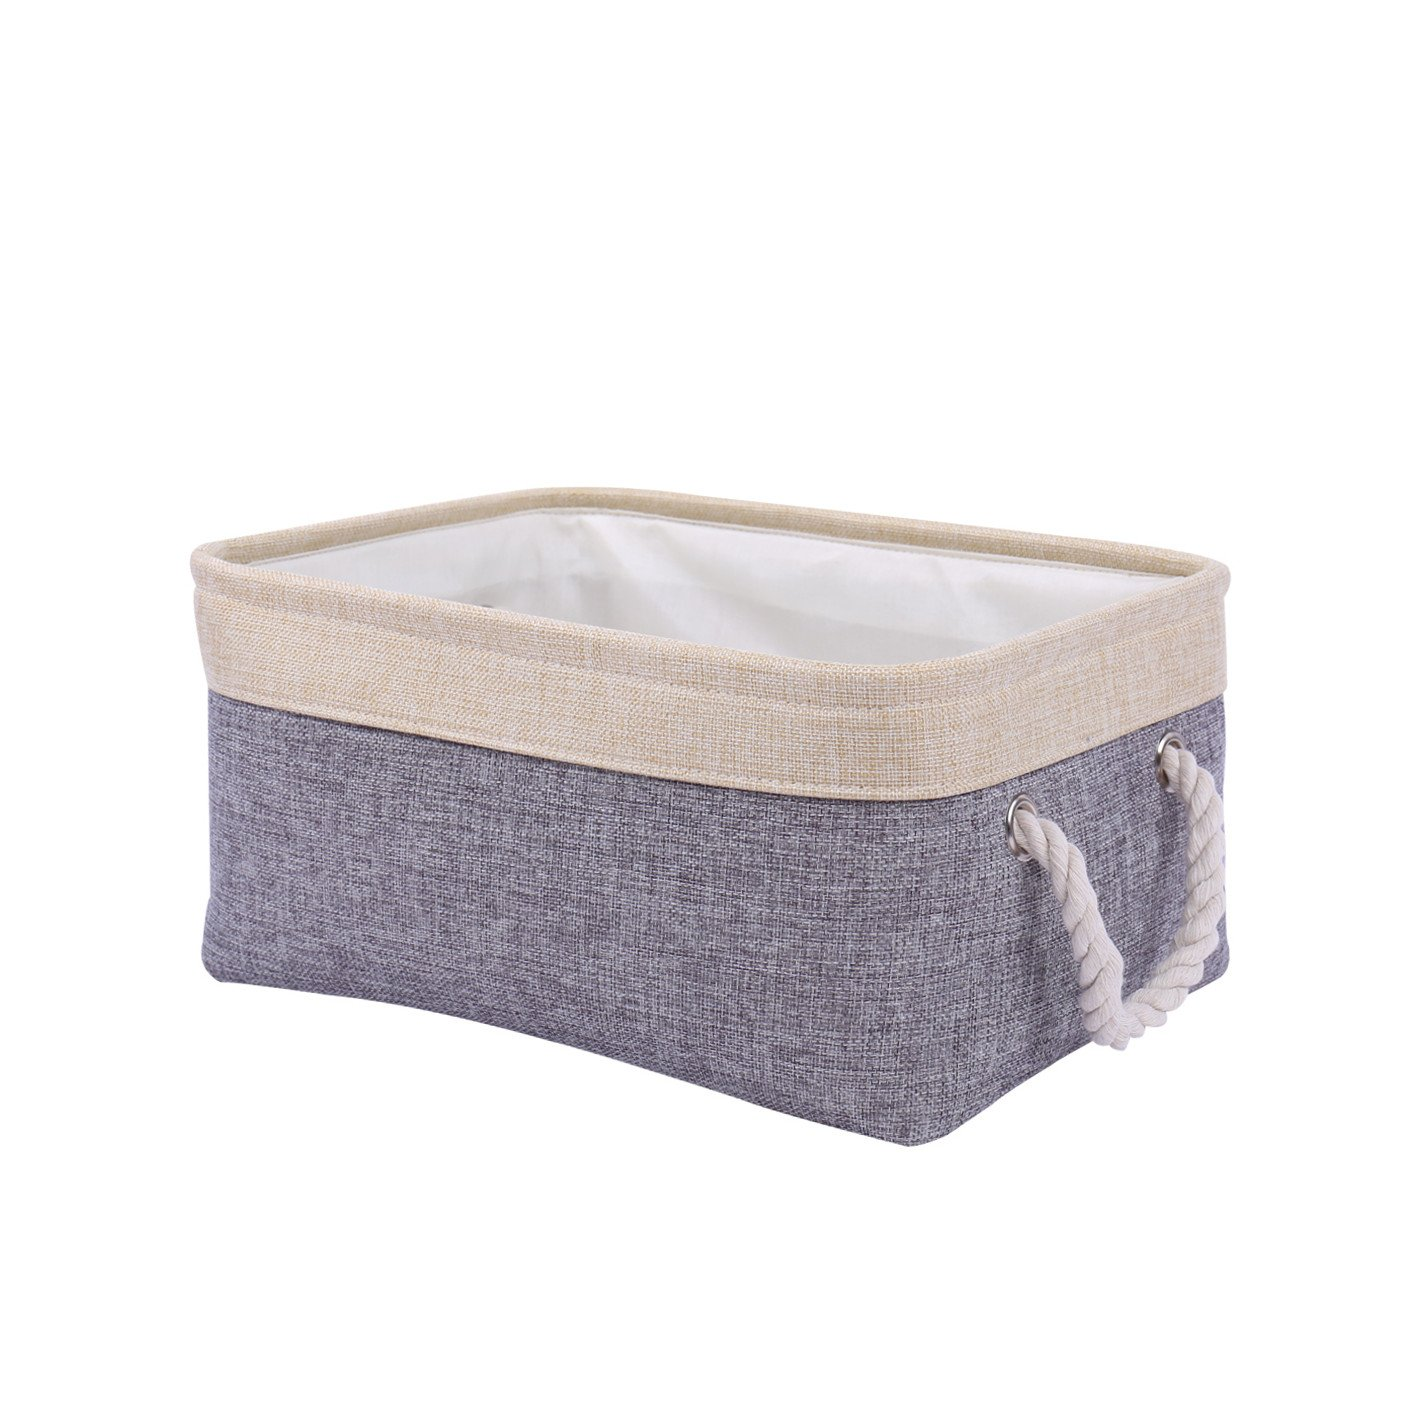 The Best Storage Container Sets (& Baskets) For Your Bathroom: Reviews & Buying Guide 6